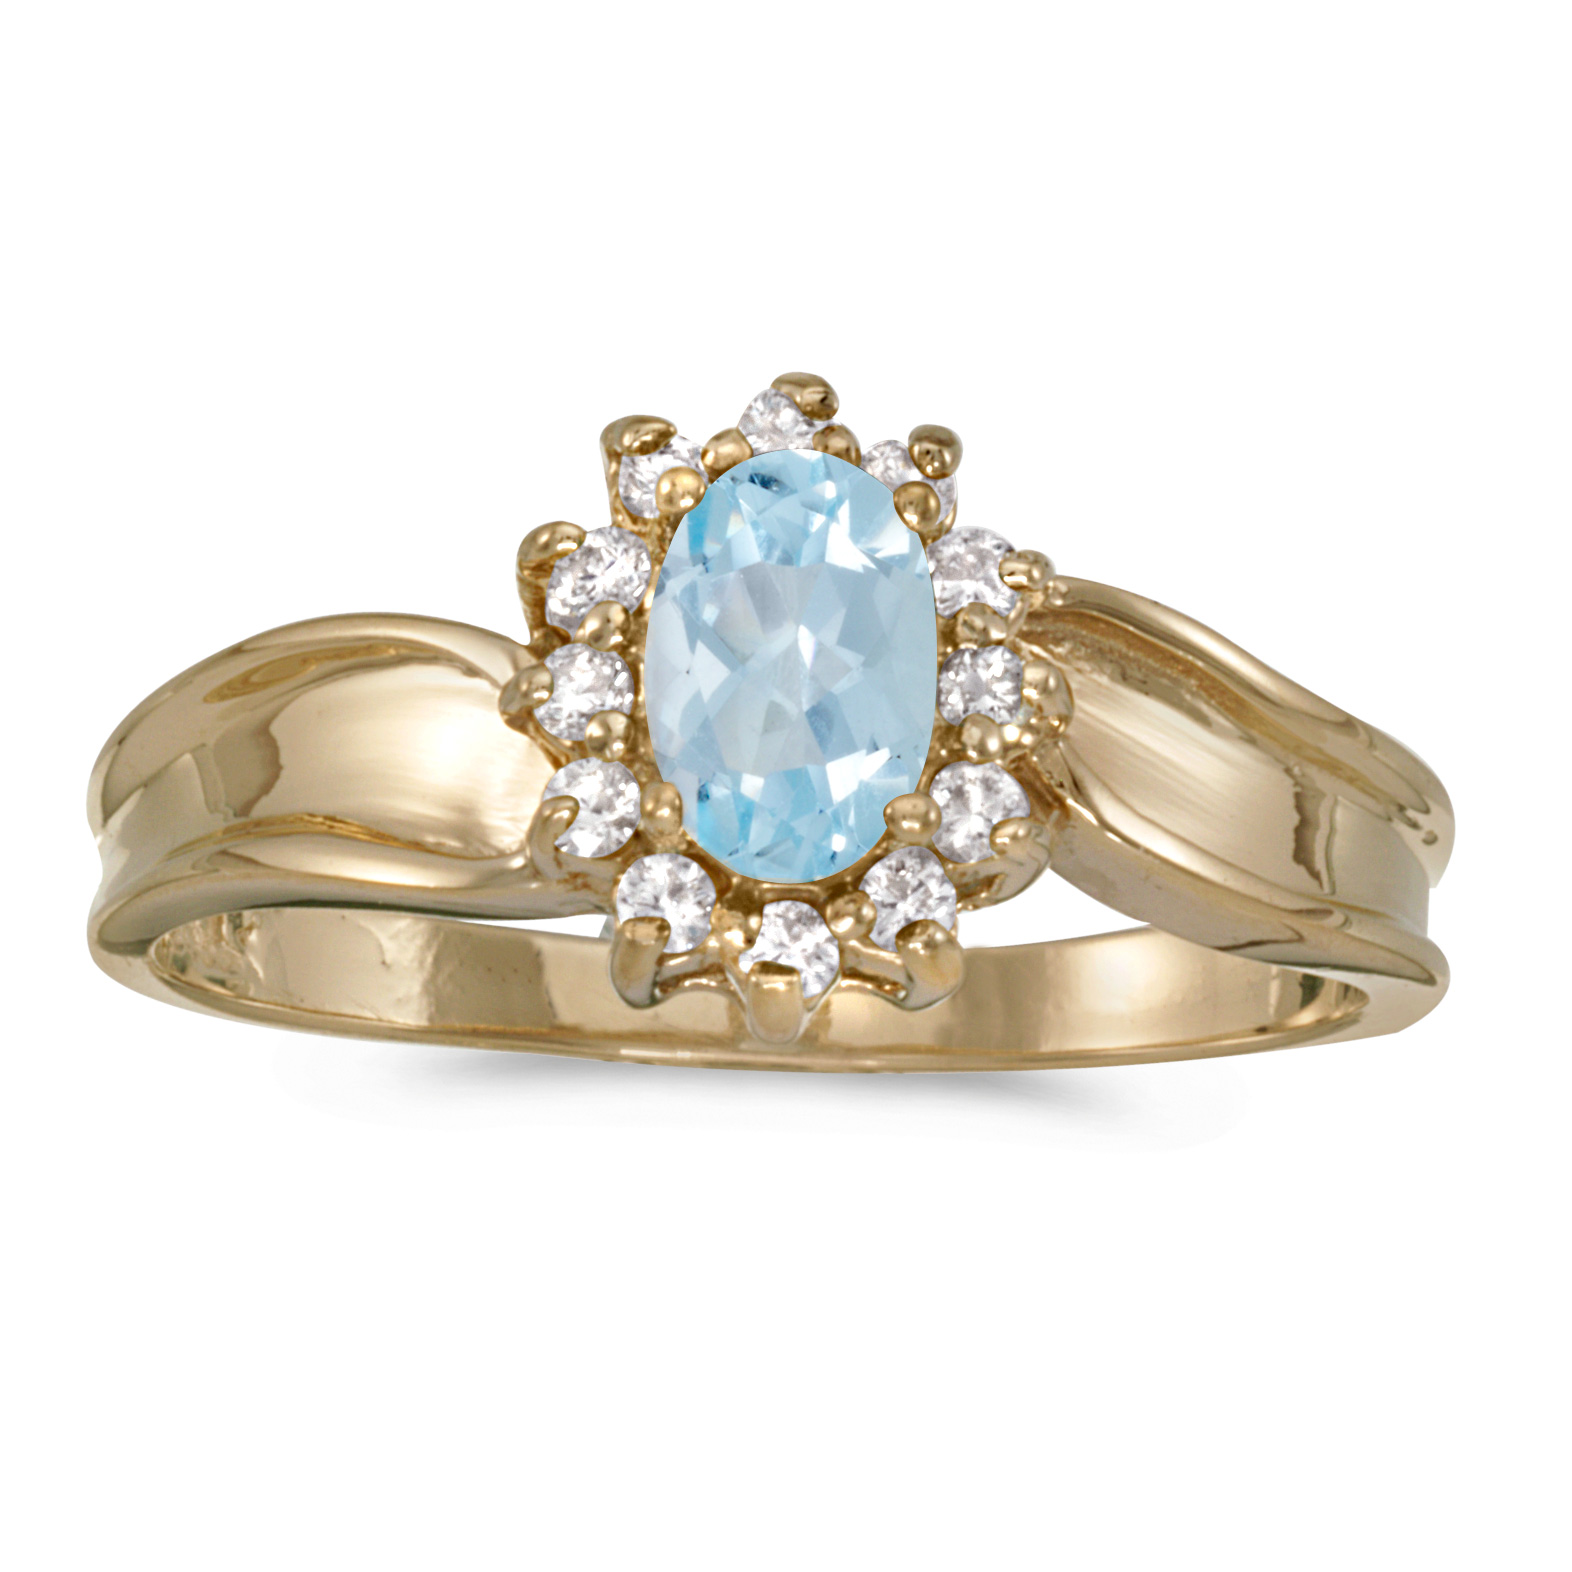 14k Yellow Gold Oval Aquamarine And Diamond Ring by